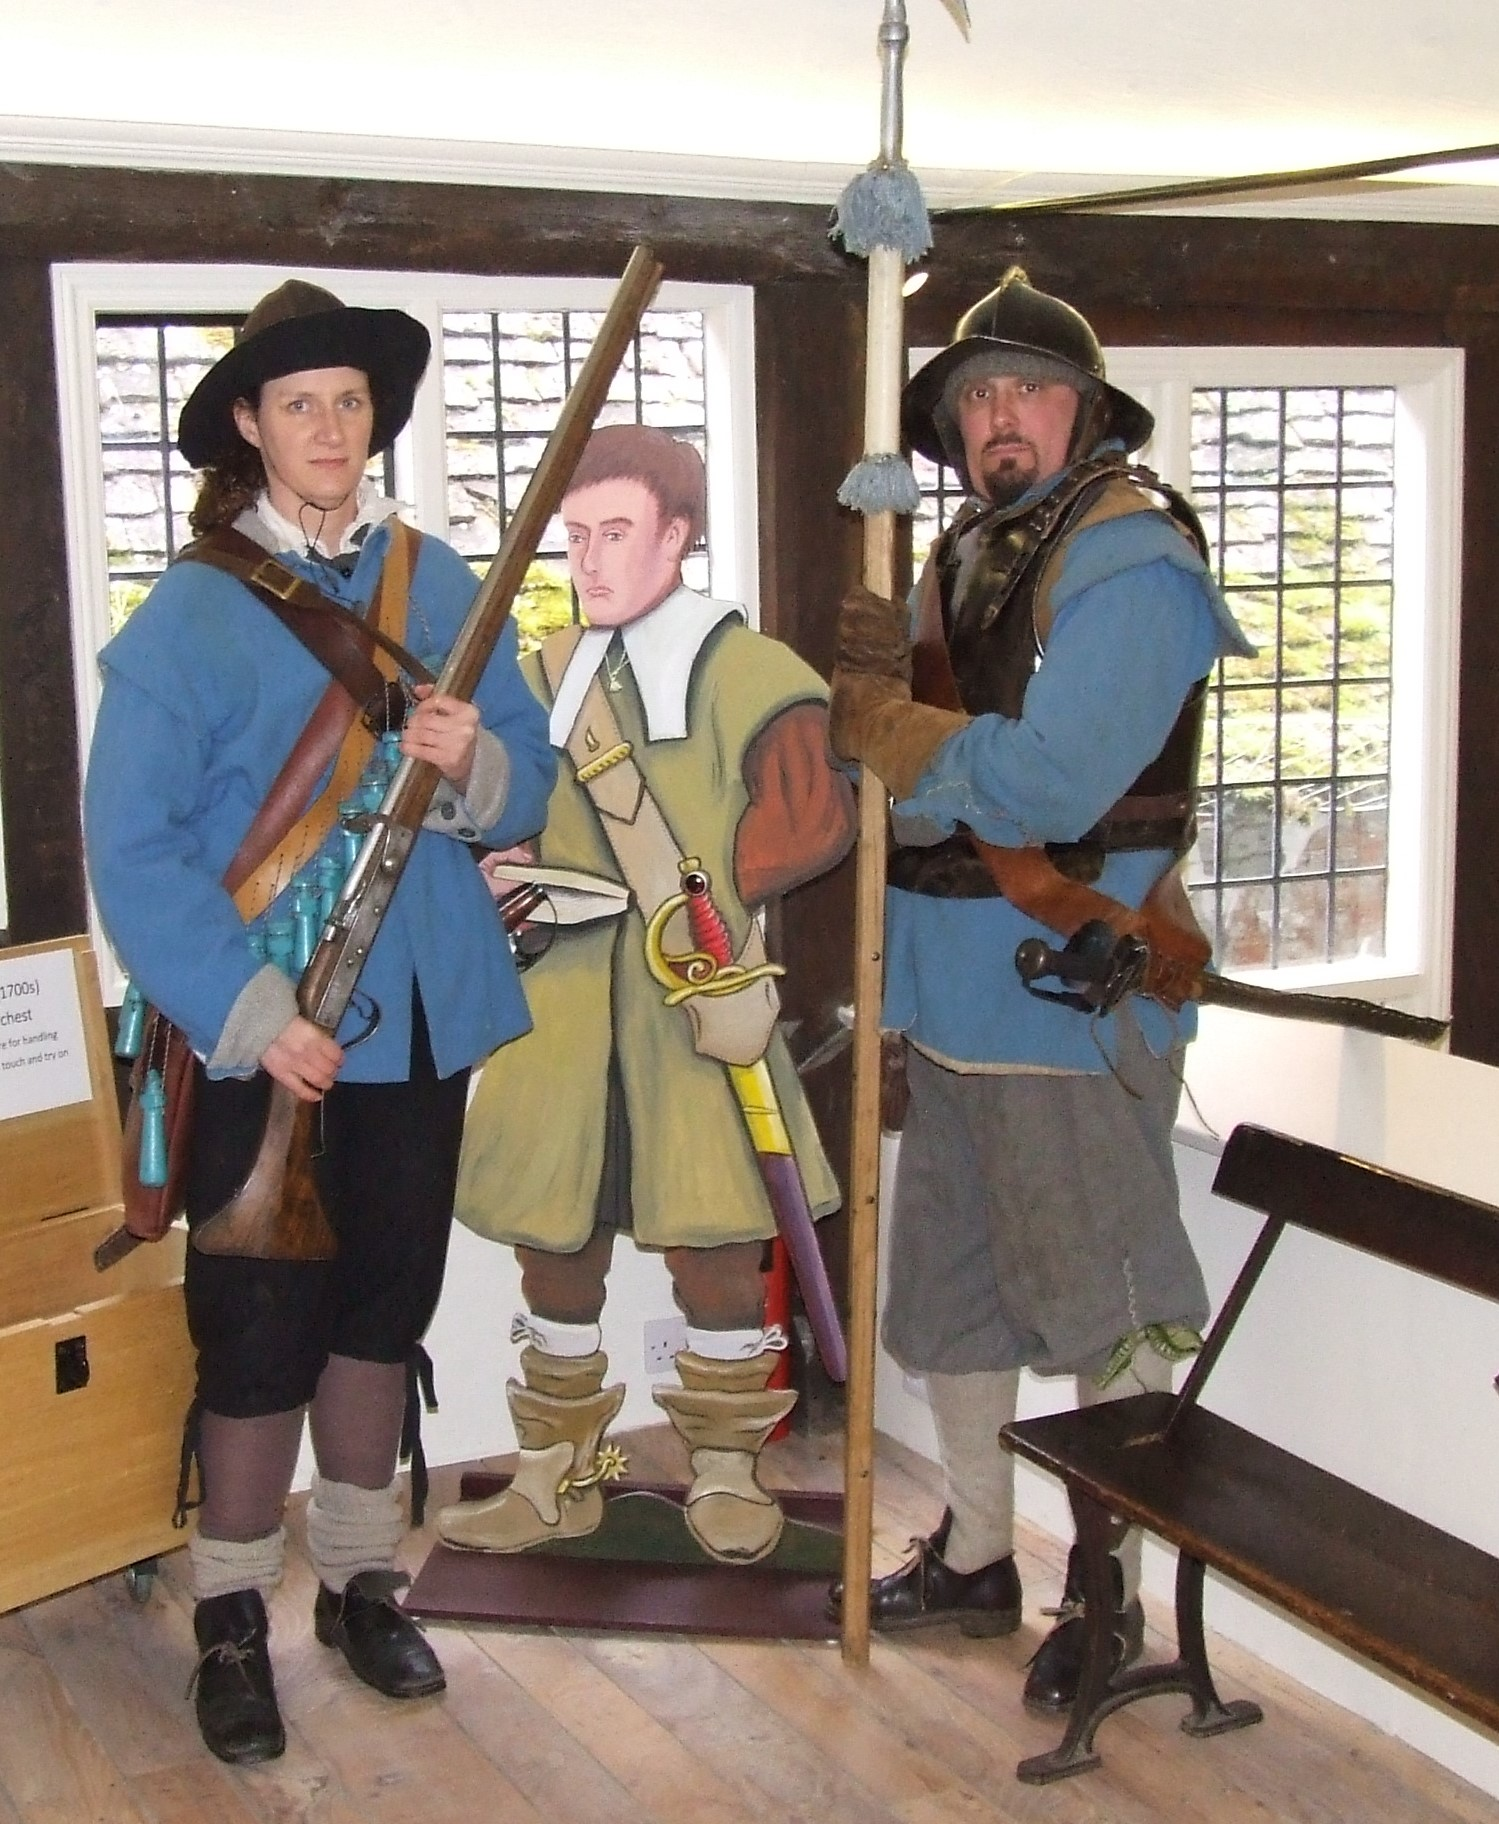 Garrisoning the Chapel – a living history event with the Sealed Knot